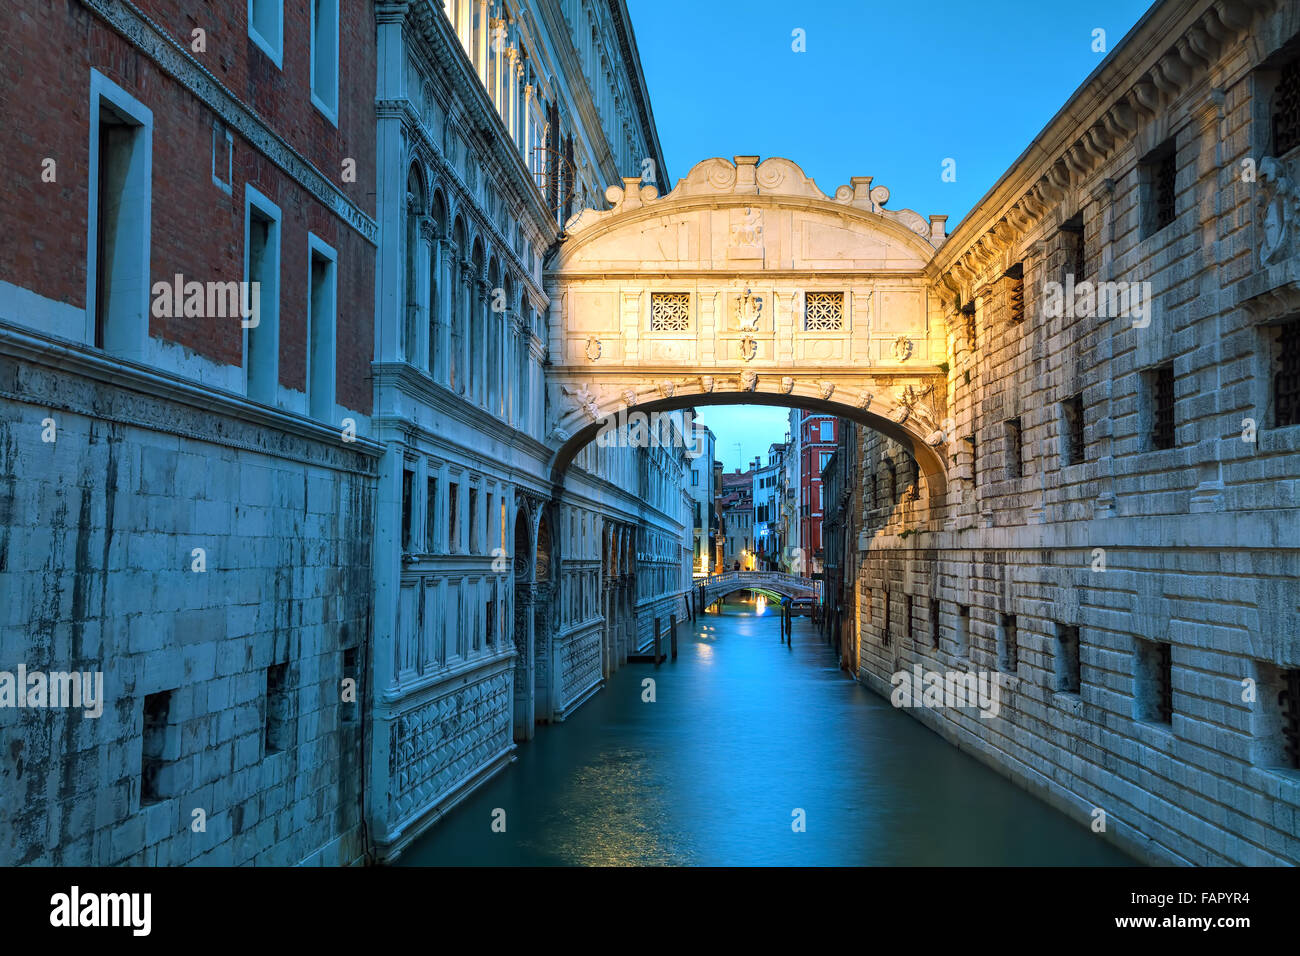 Bridge of sighs in Venice, Italy at the sunrise Stock Photo